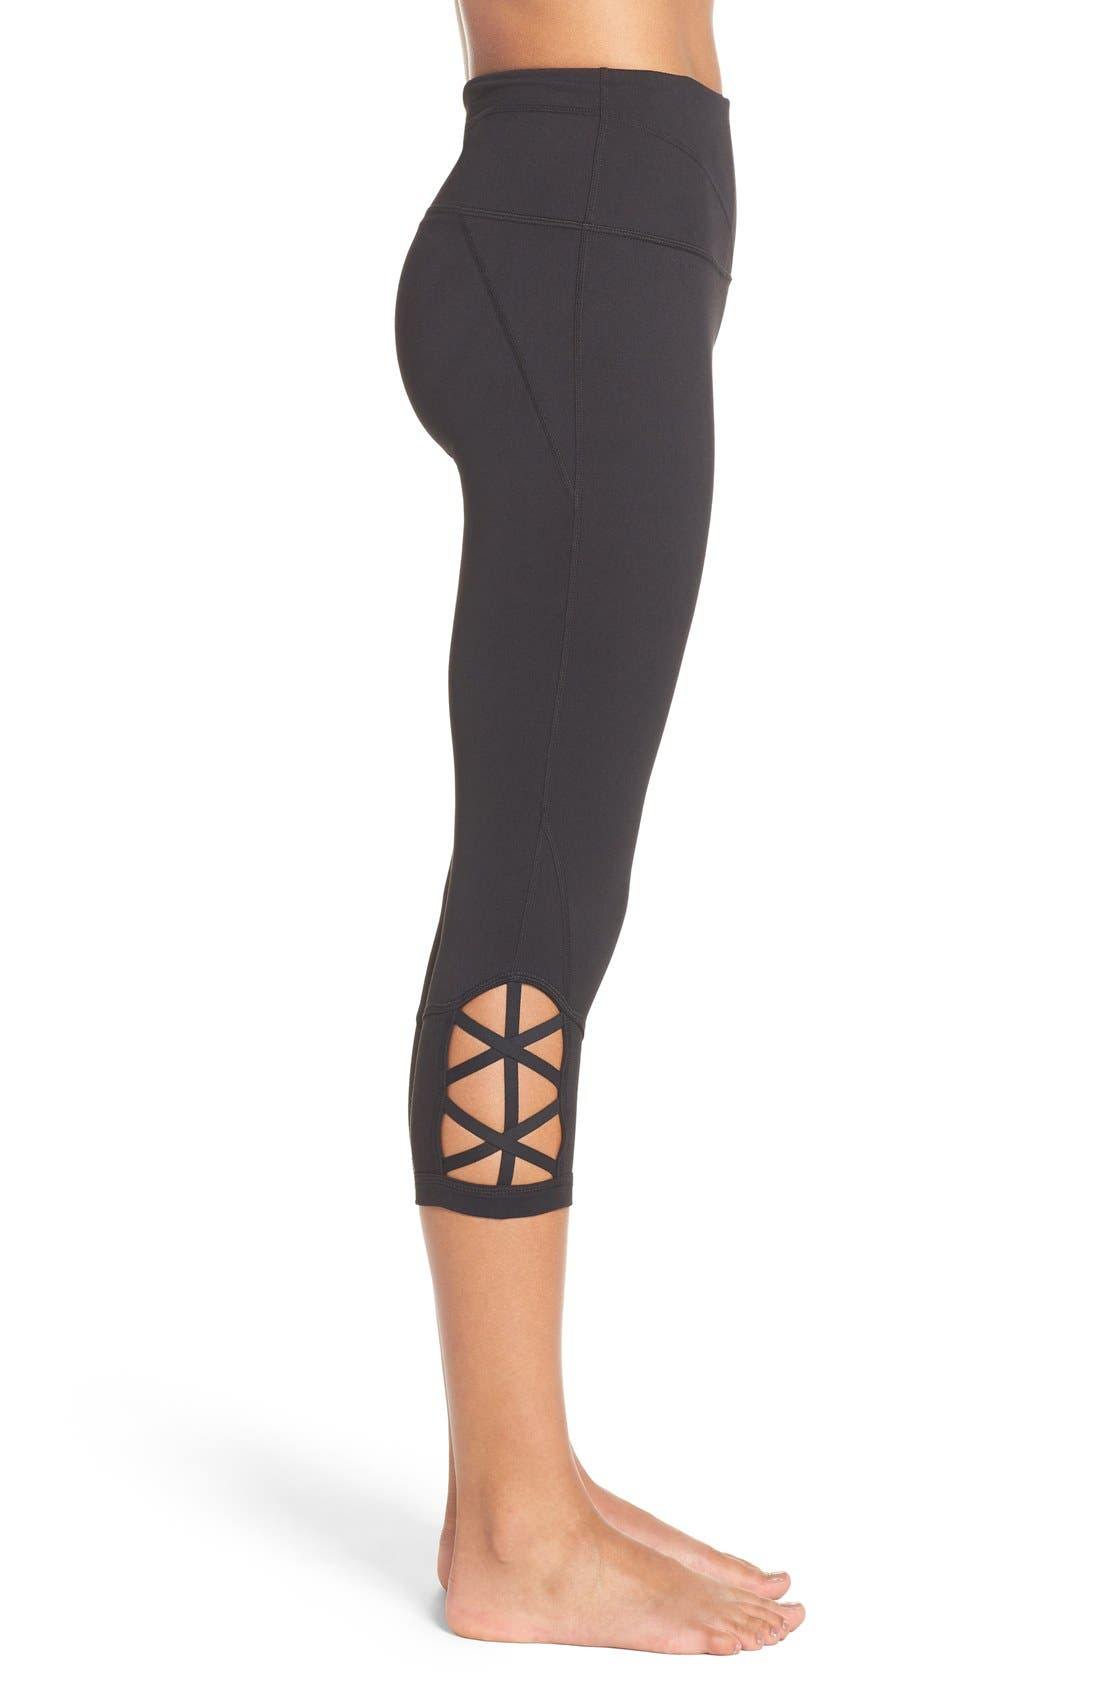 Alternate Image 3  - Zella 'Midnight' High Waist Crop Leggings